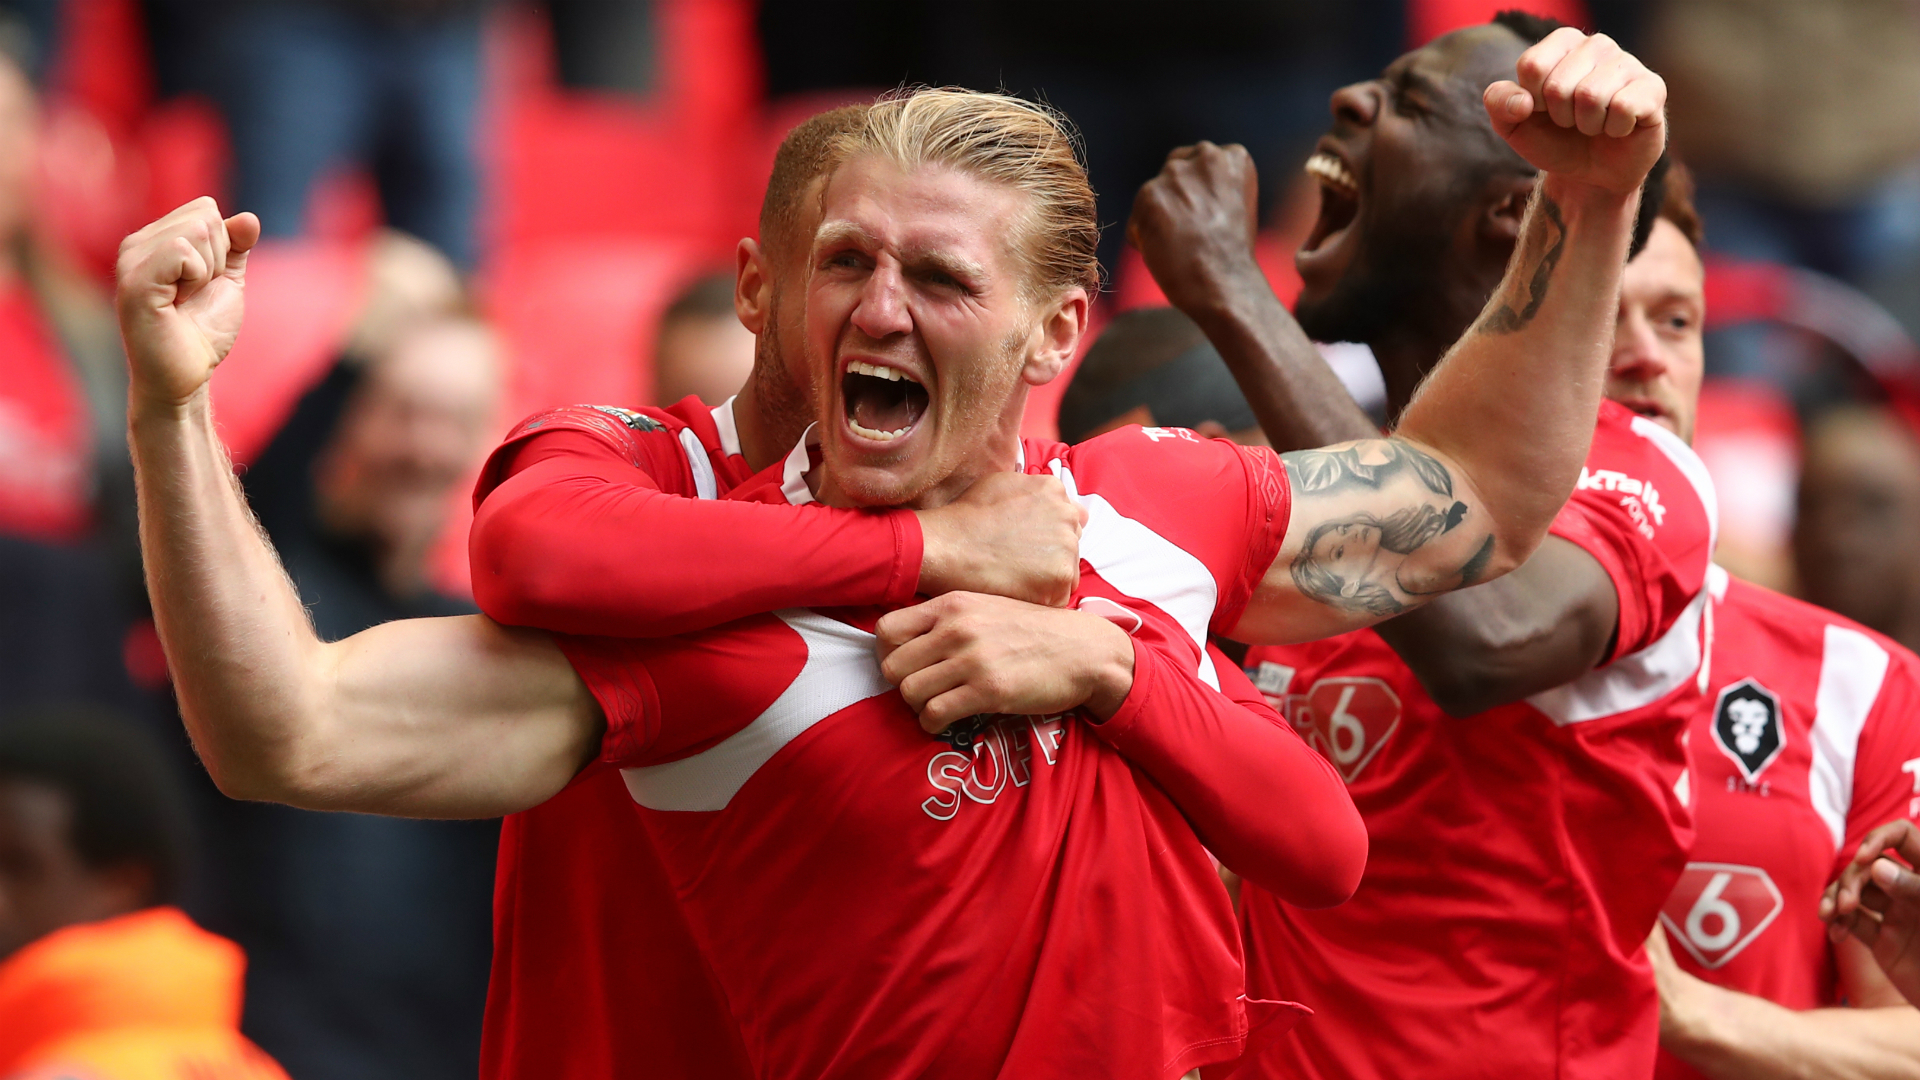 Salford City promoted to Football League for first time